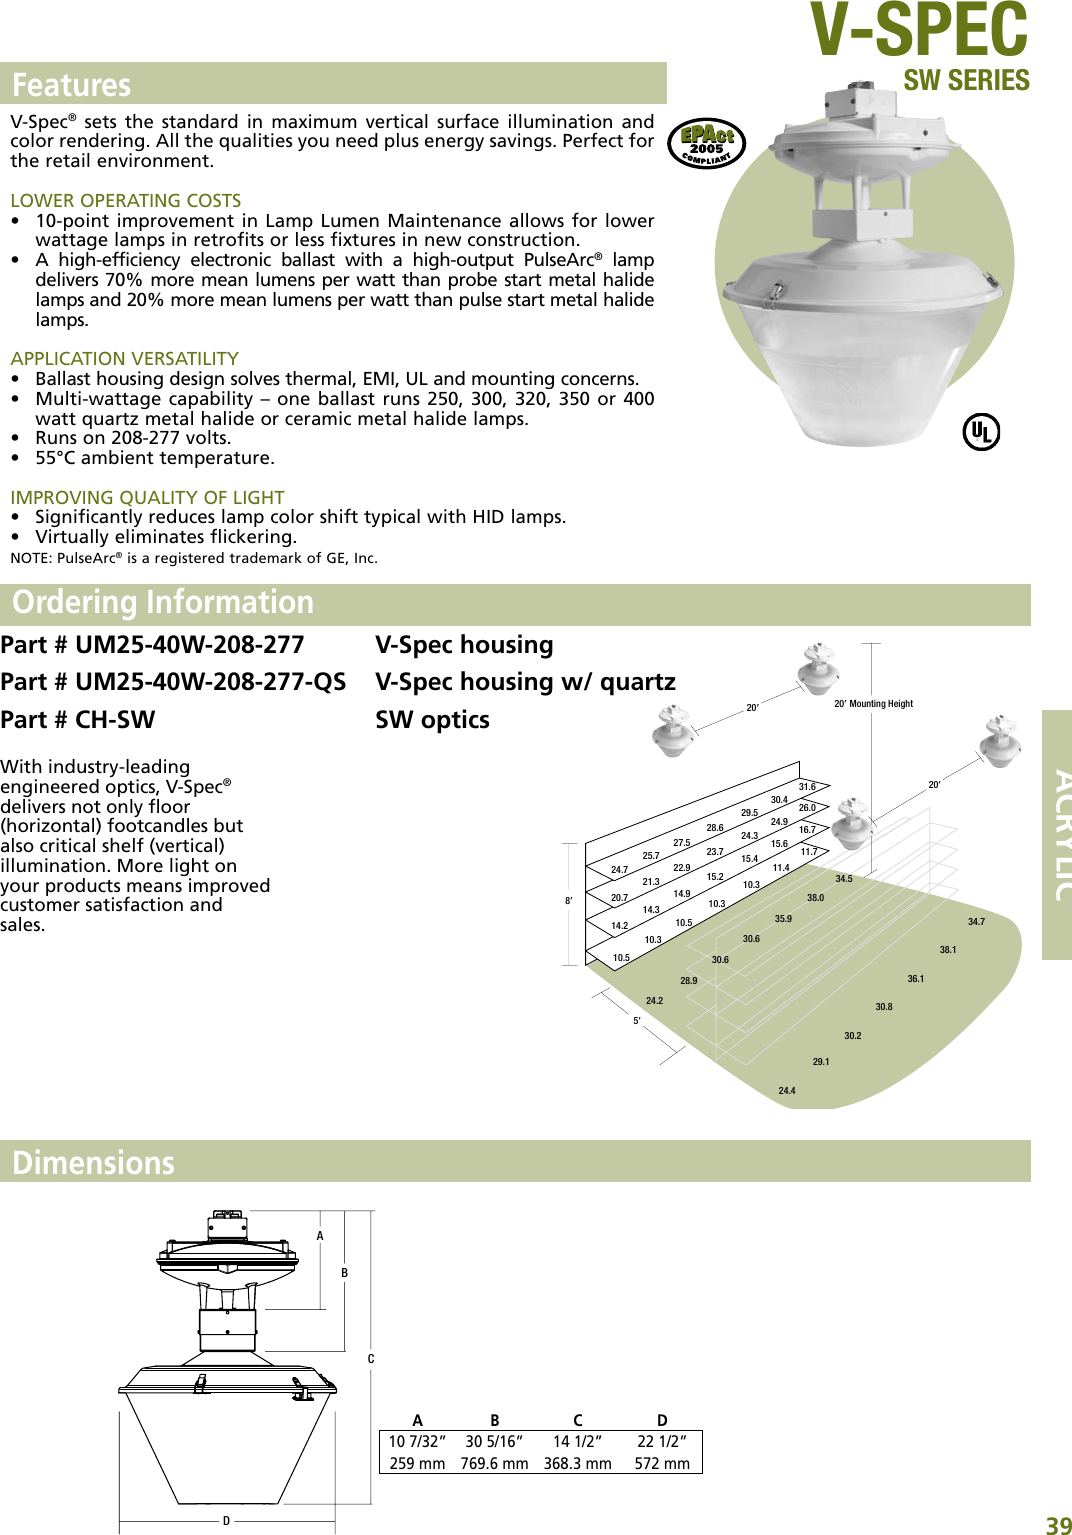 Metal Halide Wiring Diagram from usermanual.wiki